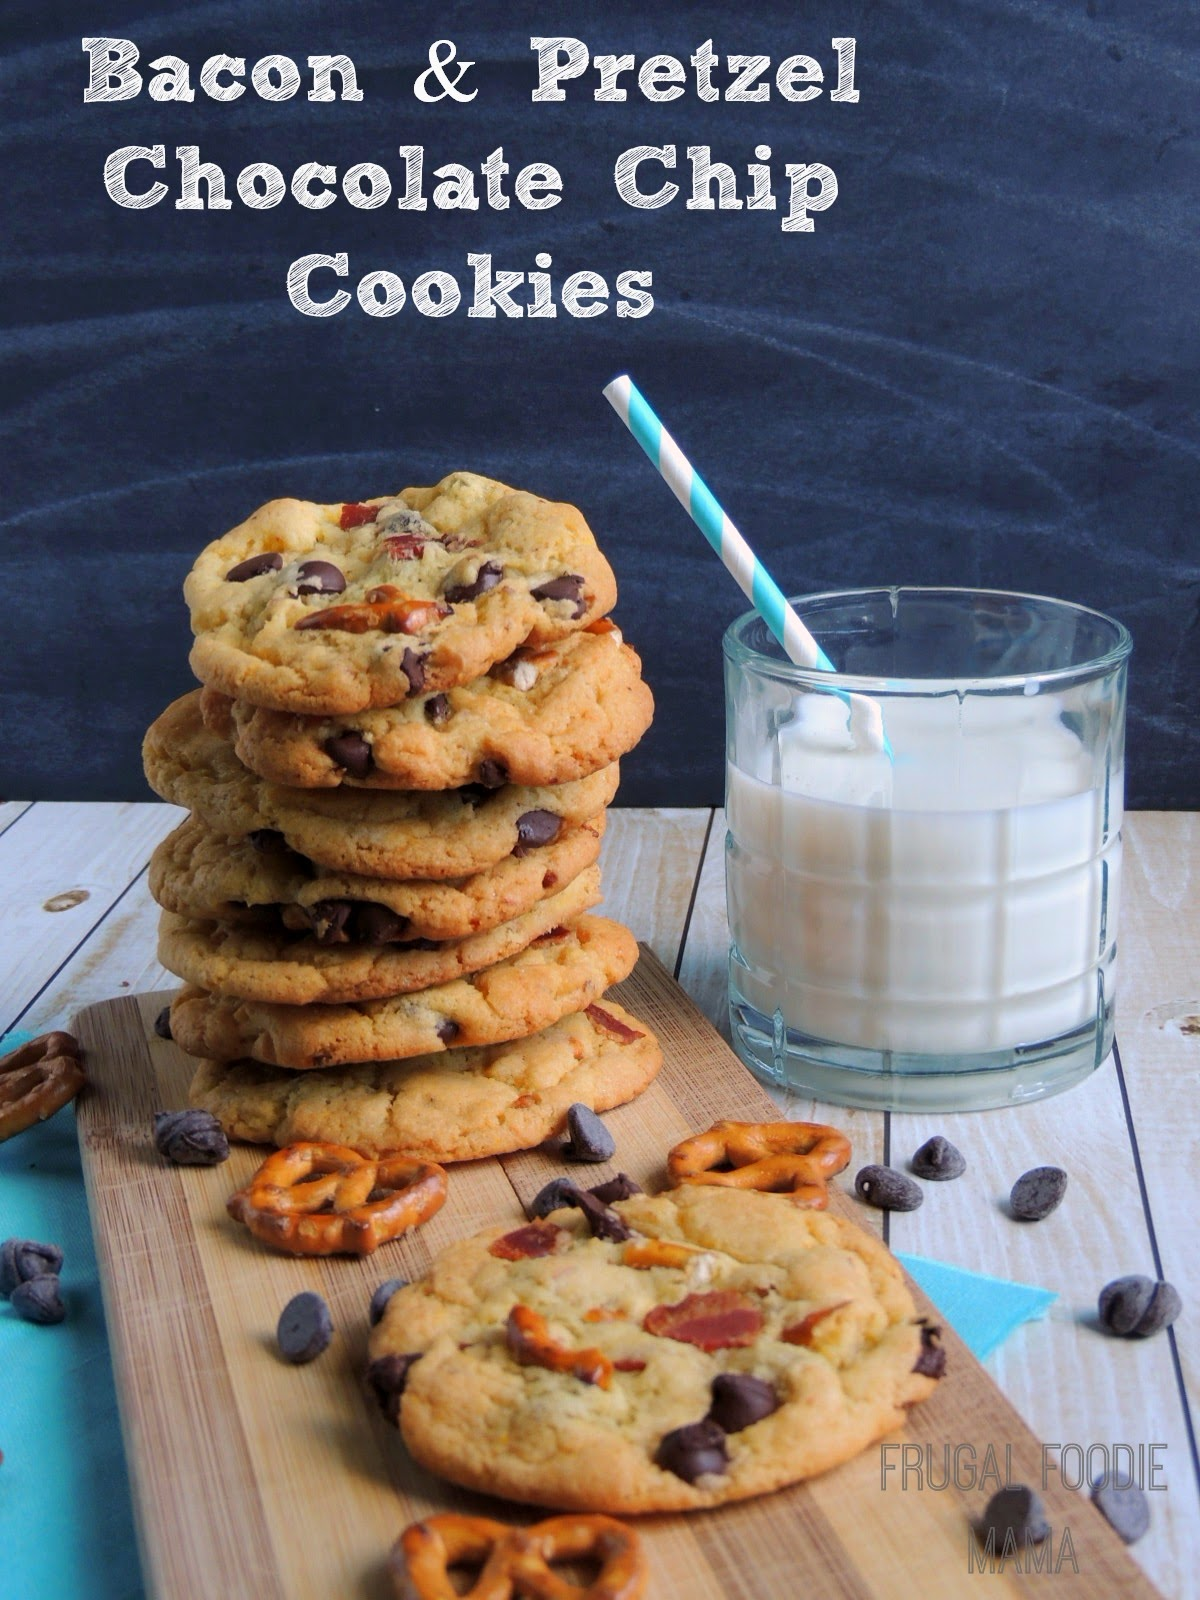 Bacon and Pretzel Chocolate Chip Cookies via thefrugalfoodiemama.com